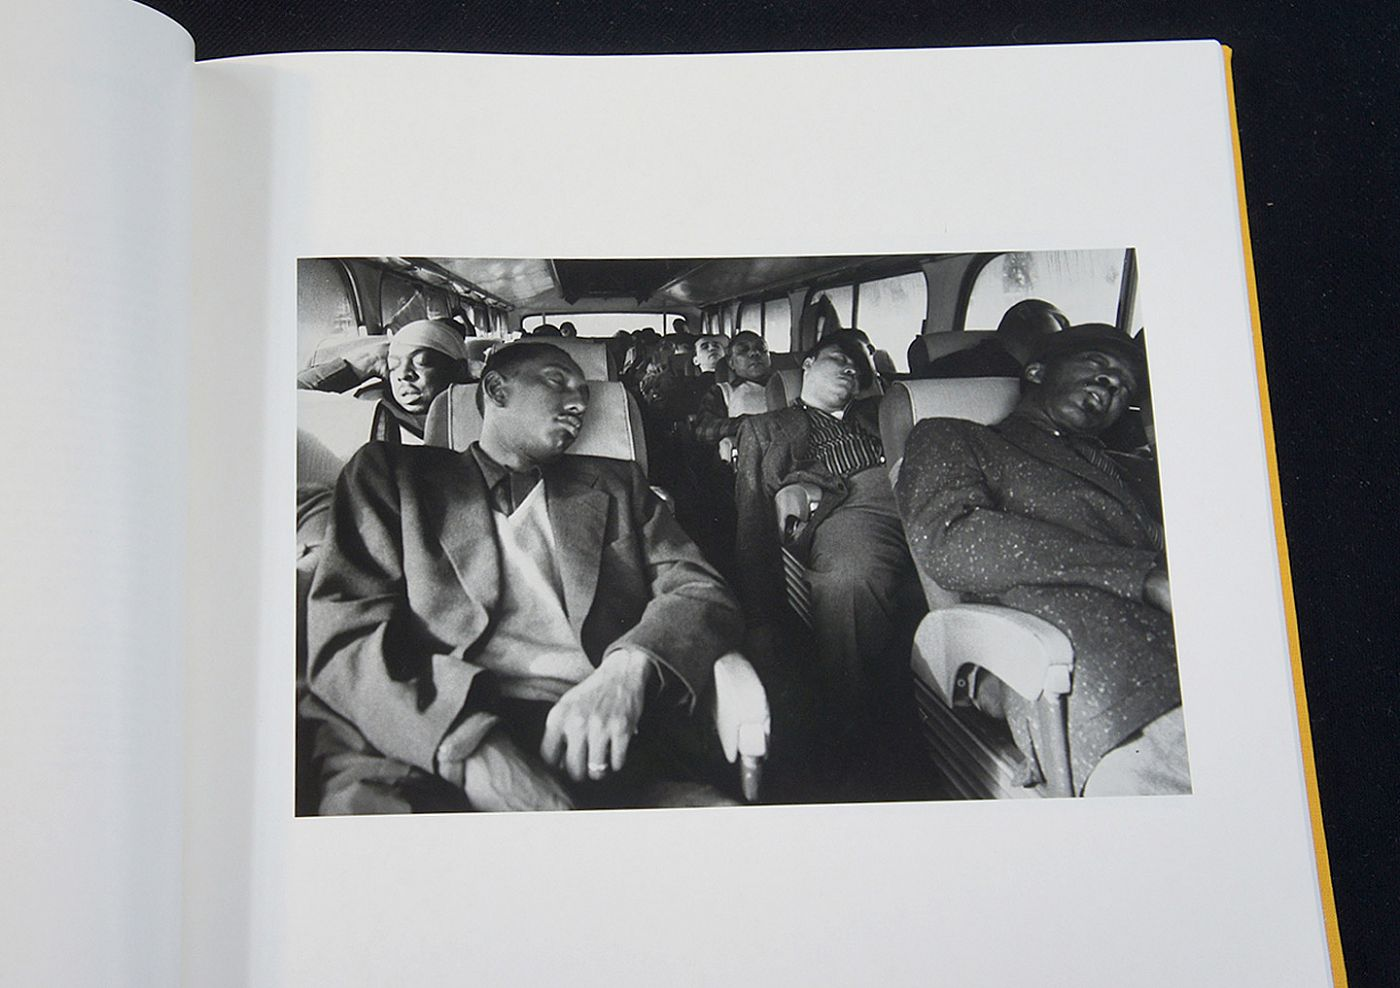 Like a One-Eyed Cat: Photographs by Lee Friedlander 1956-1987 (Special Limited Edition with Ten Photogravure Prints)